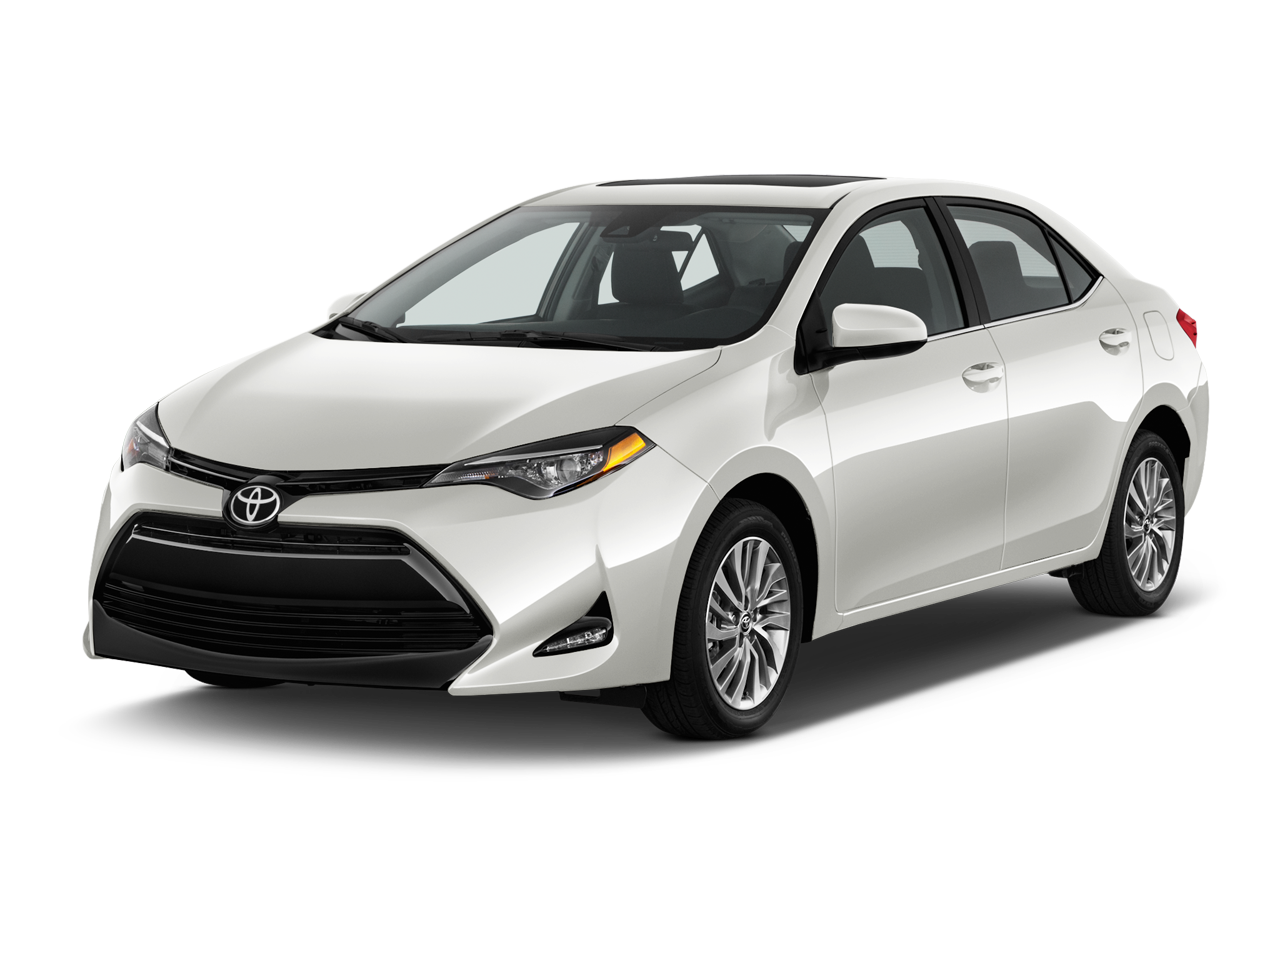 new 2017 toyota corolla le eco w package 1 near sioux city ia rick collins toyota. Black Bedroom Furniture Sets. Home Design Ideas